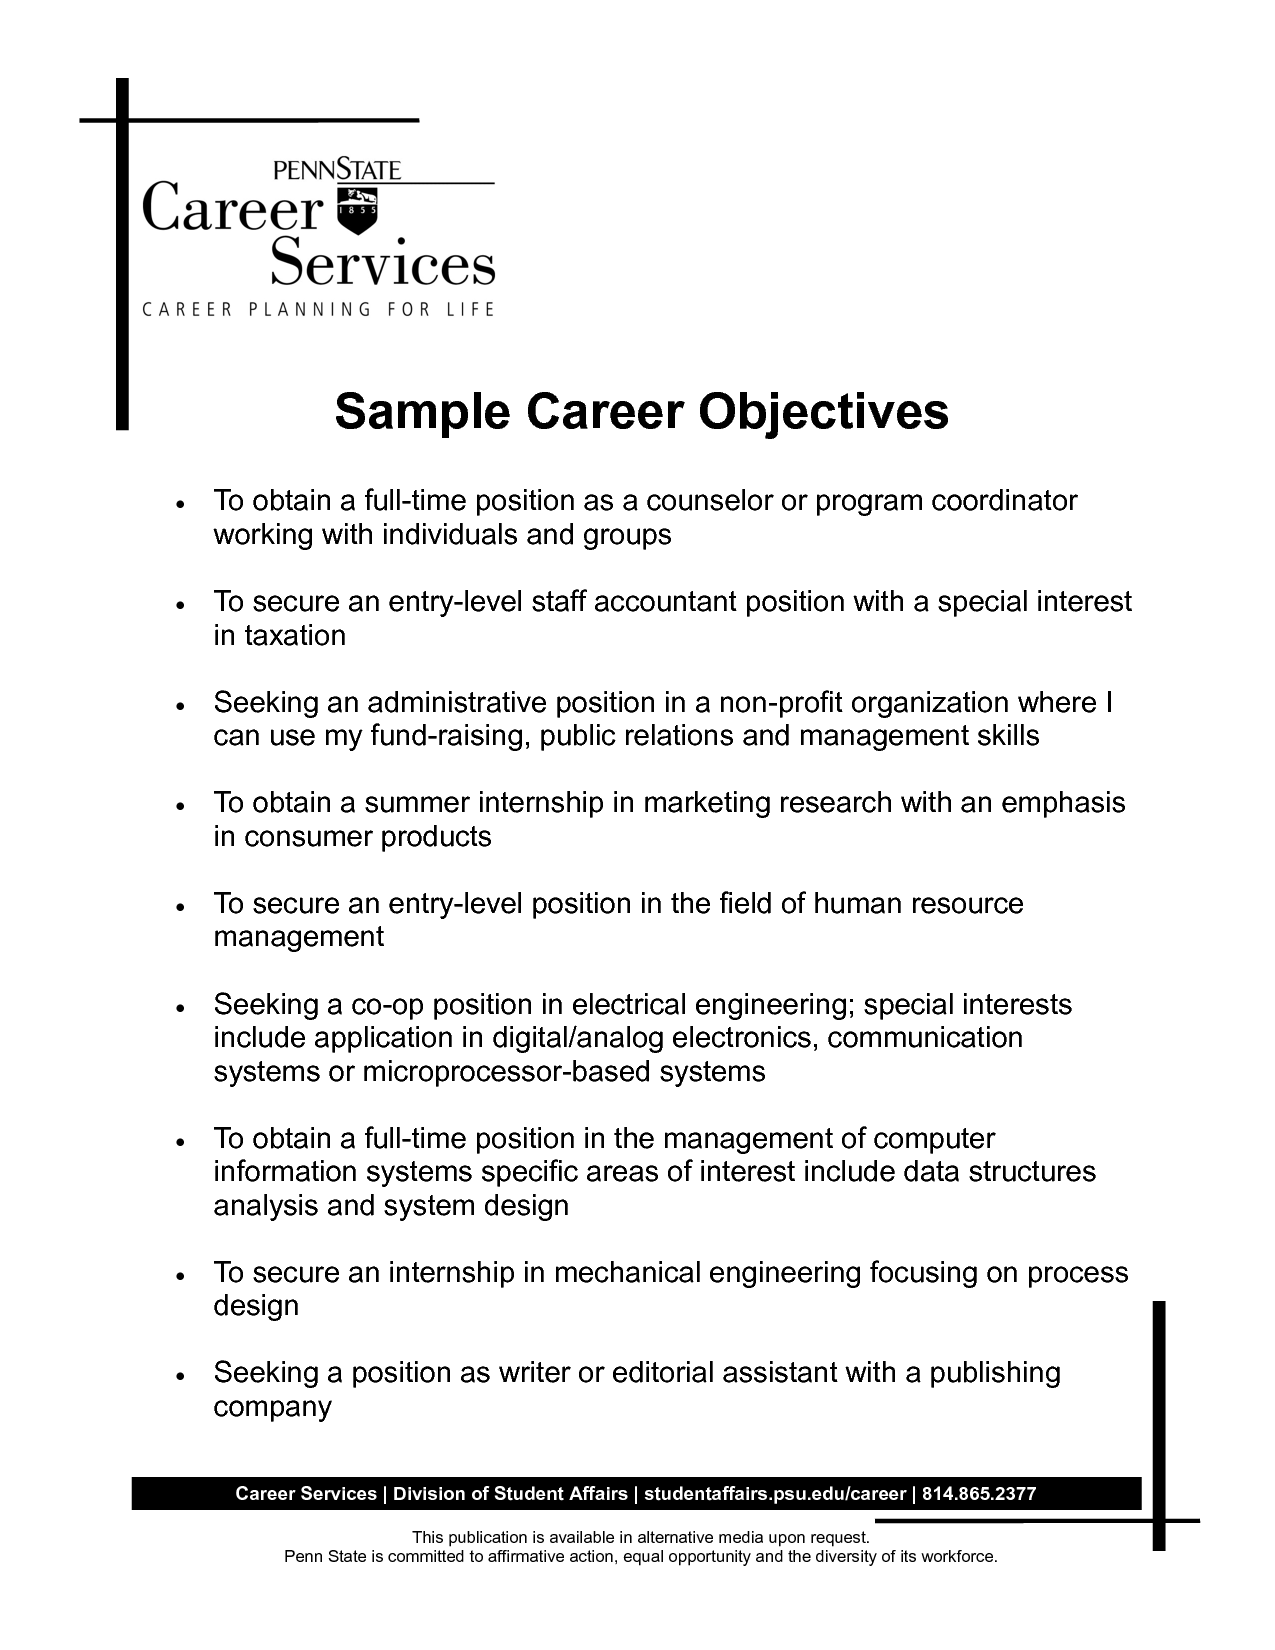 Sample Resume Objectives For Students Pin By Amanda C On Job Related Sample Resume Resume Resume